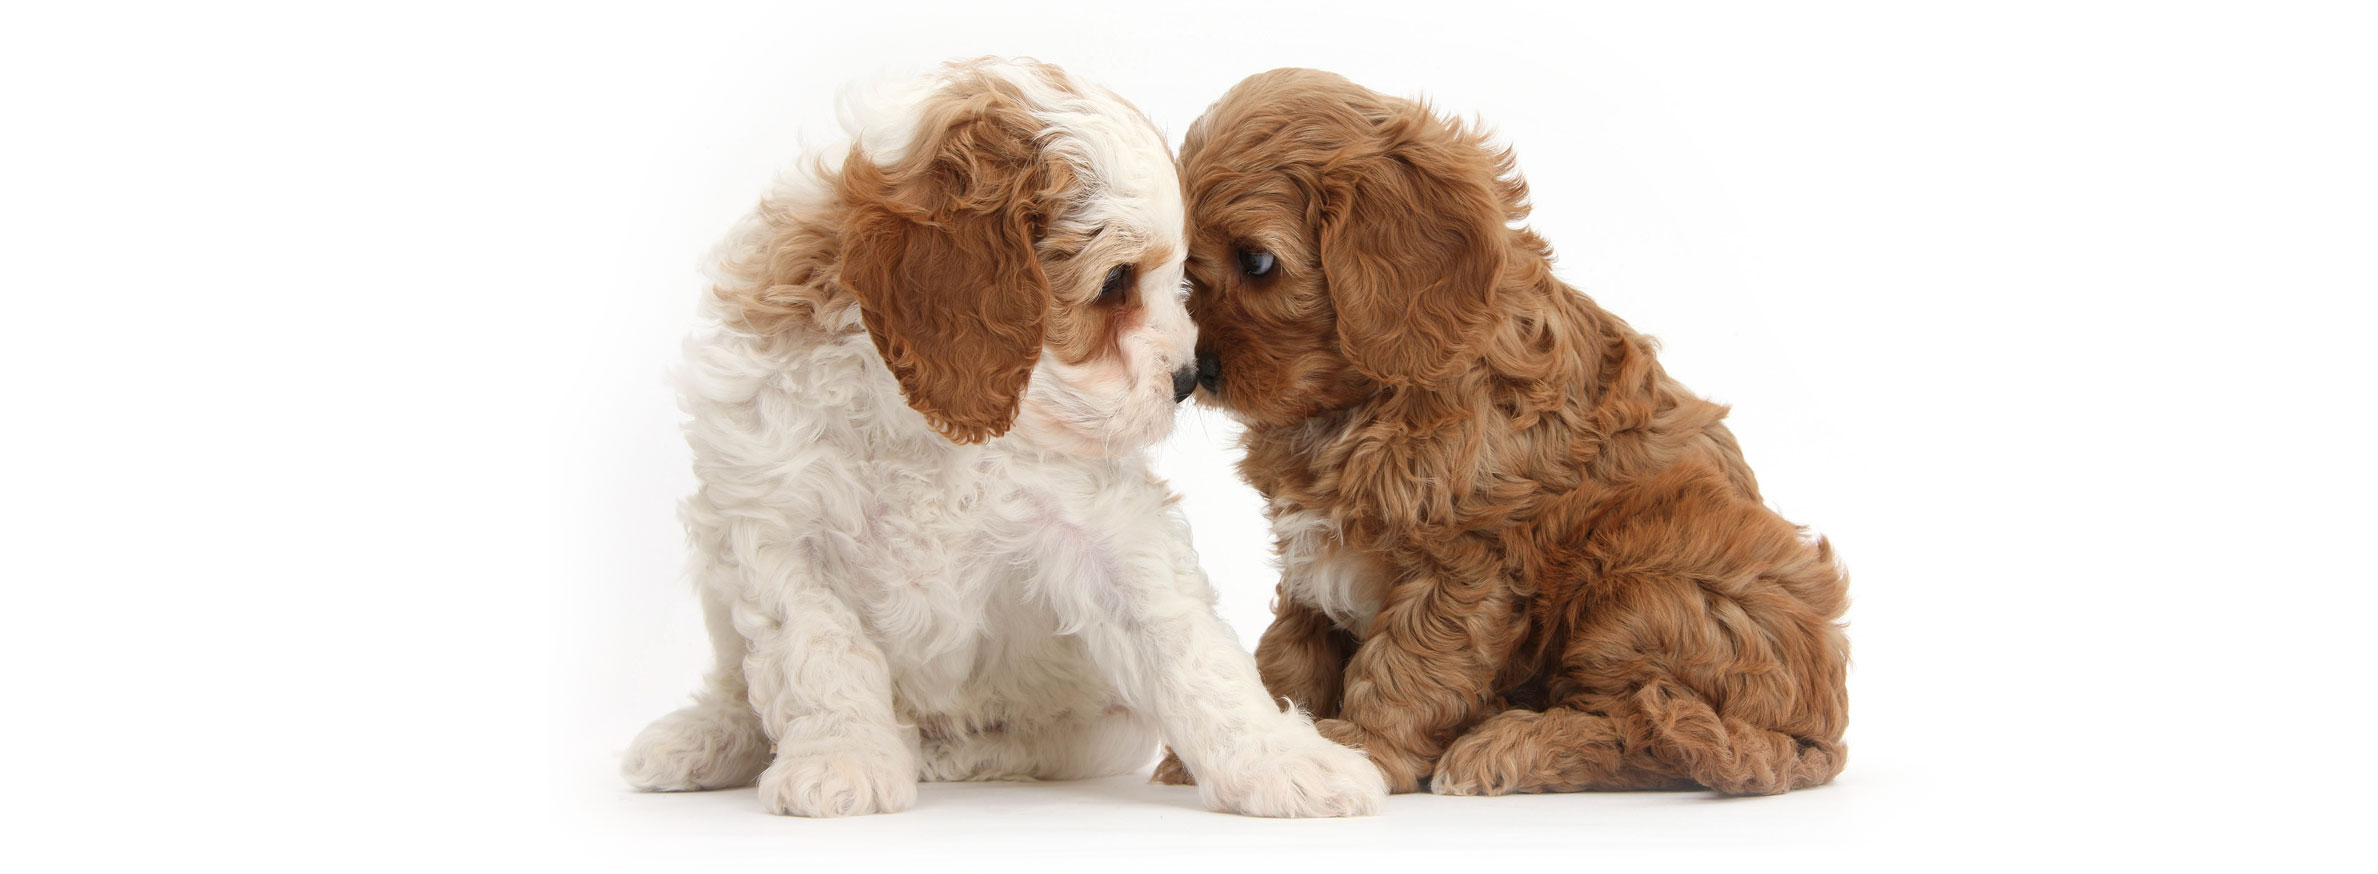 Louisiana labradoodle puppies